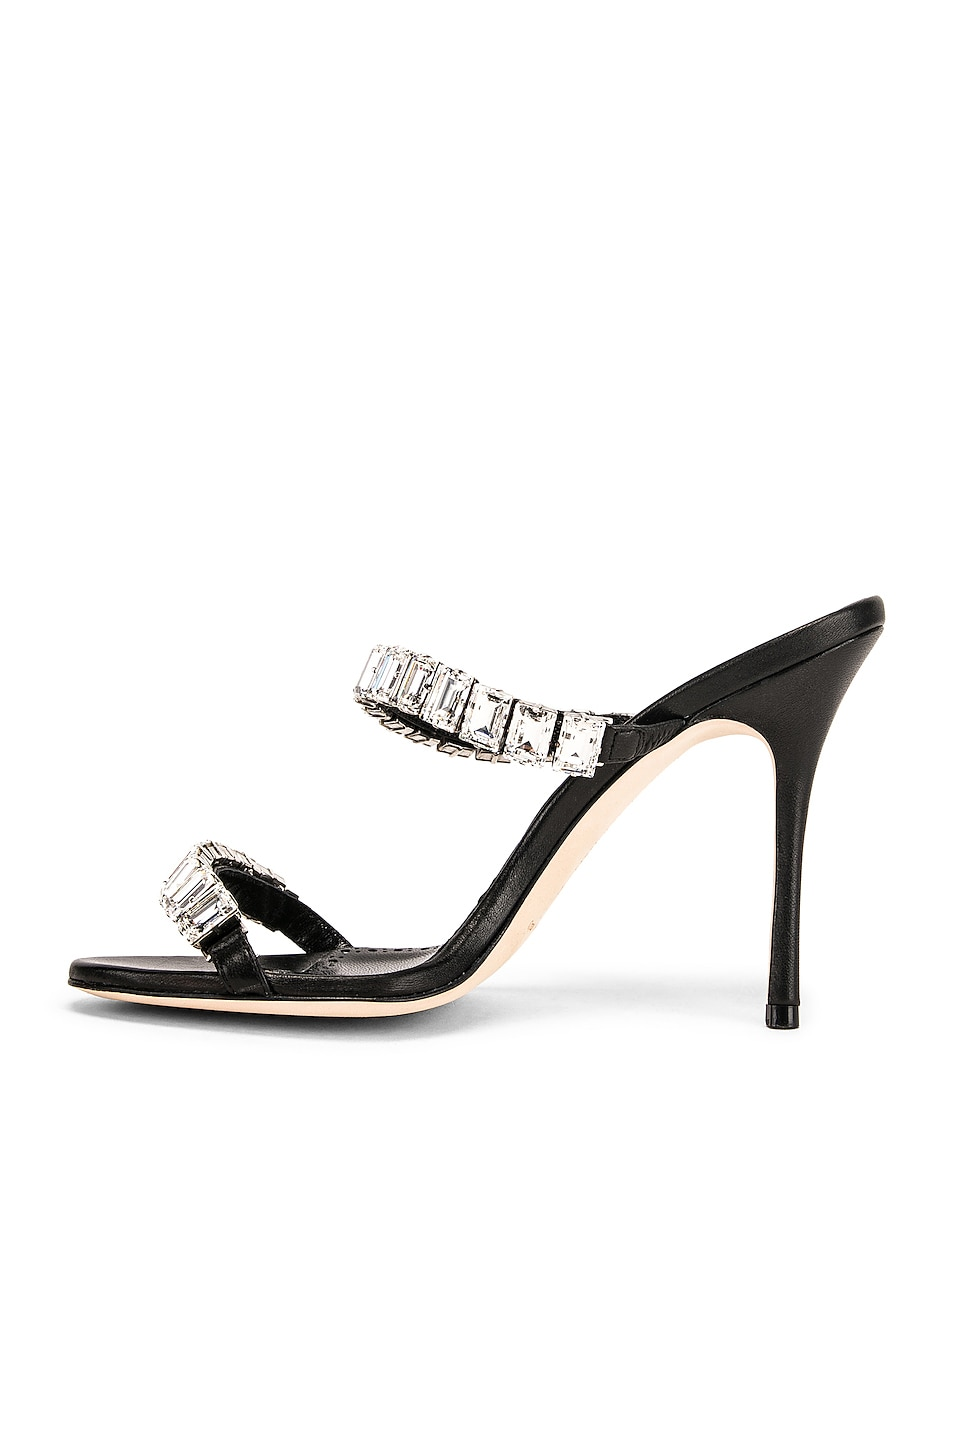 Image 5 of Manolo Blahnik Dallitre 105 Sandal in Nero Nappa